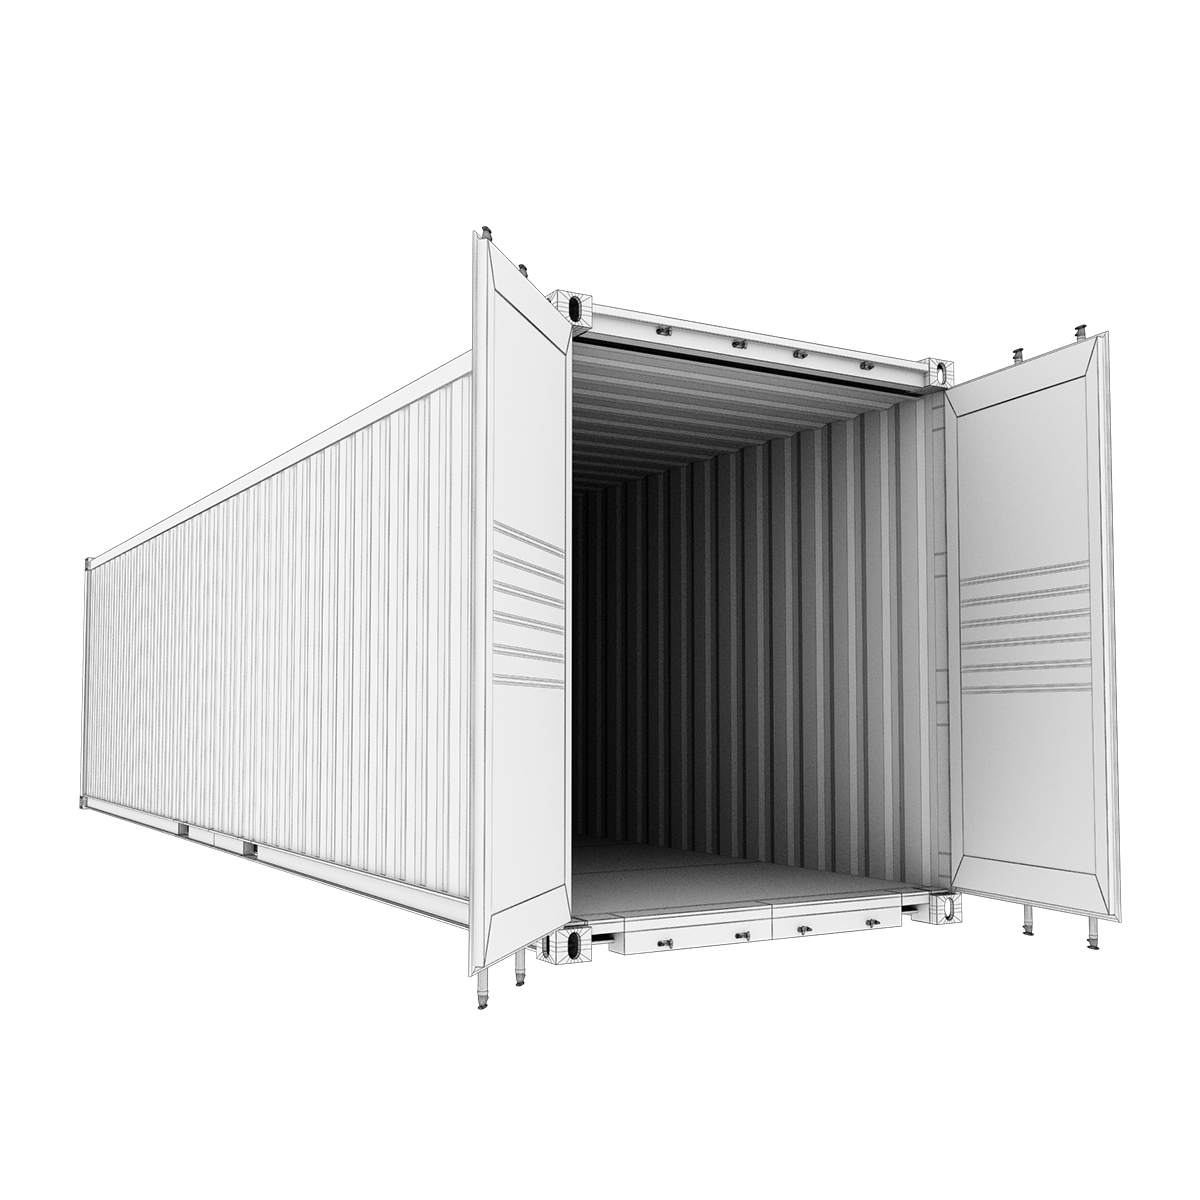 40 feet high cube maersk shipping container 3d model max fbx ma mb texture obj 278438